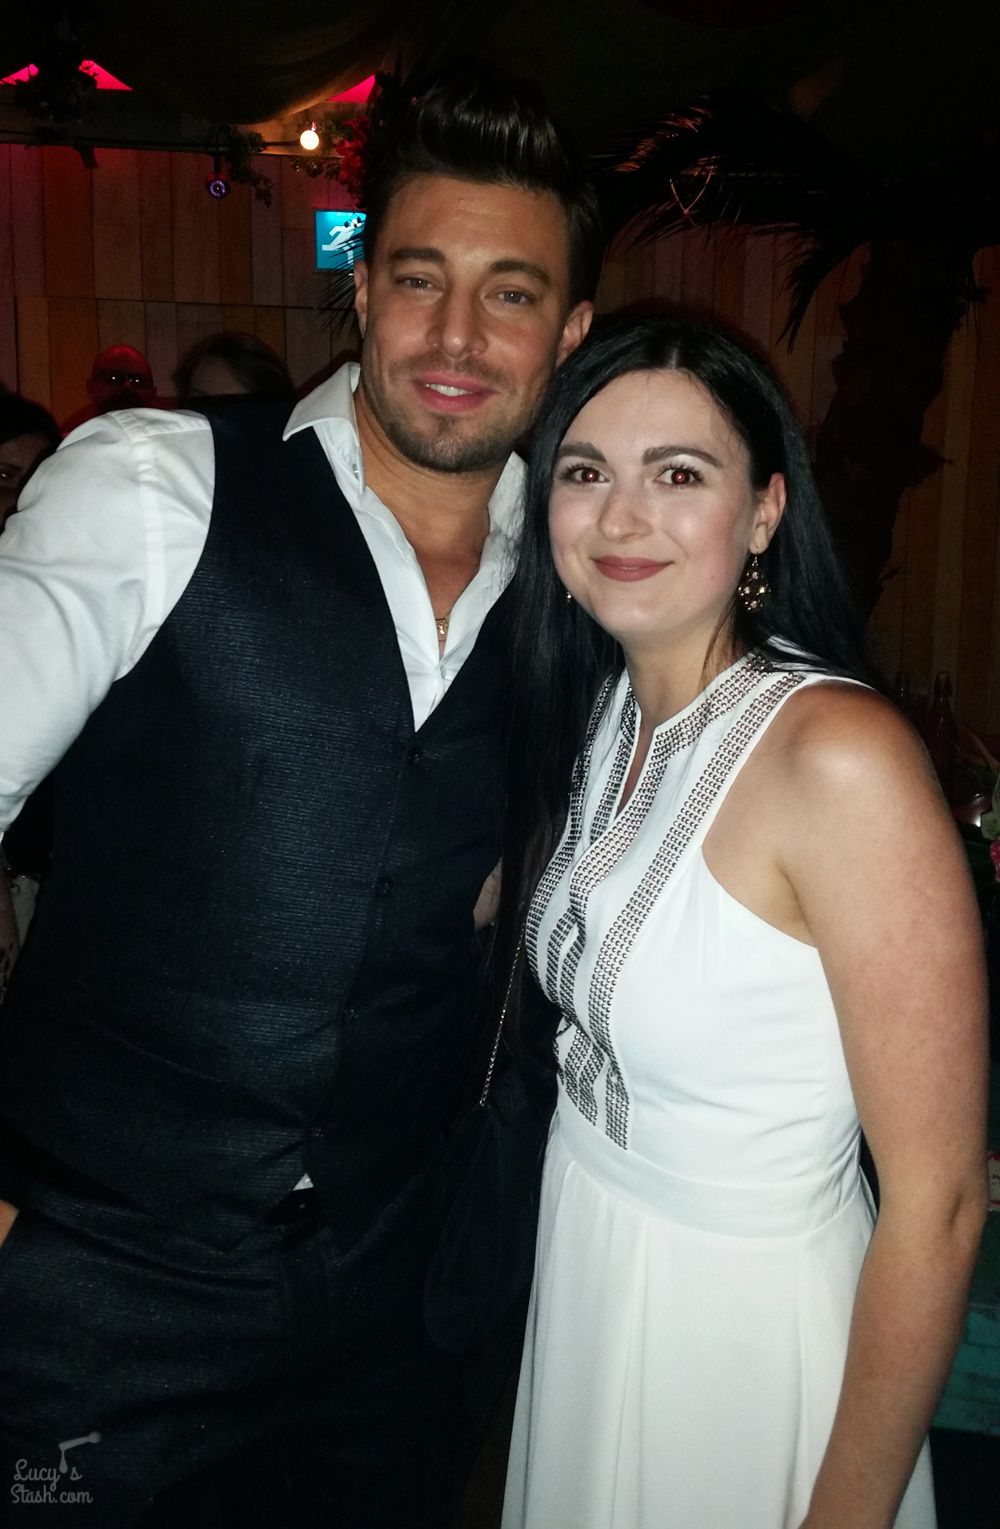 Duncan James and I